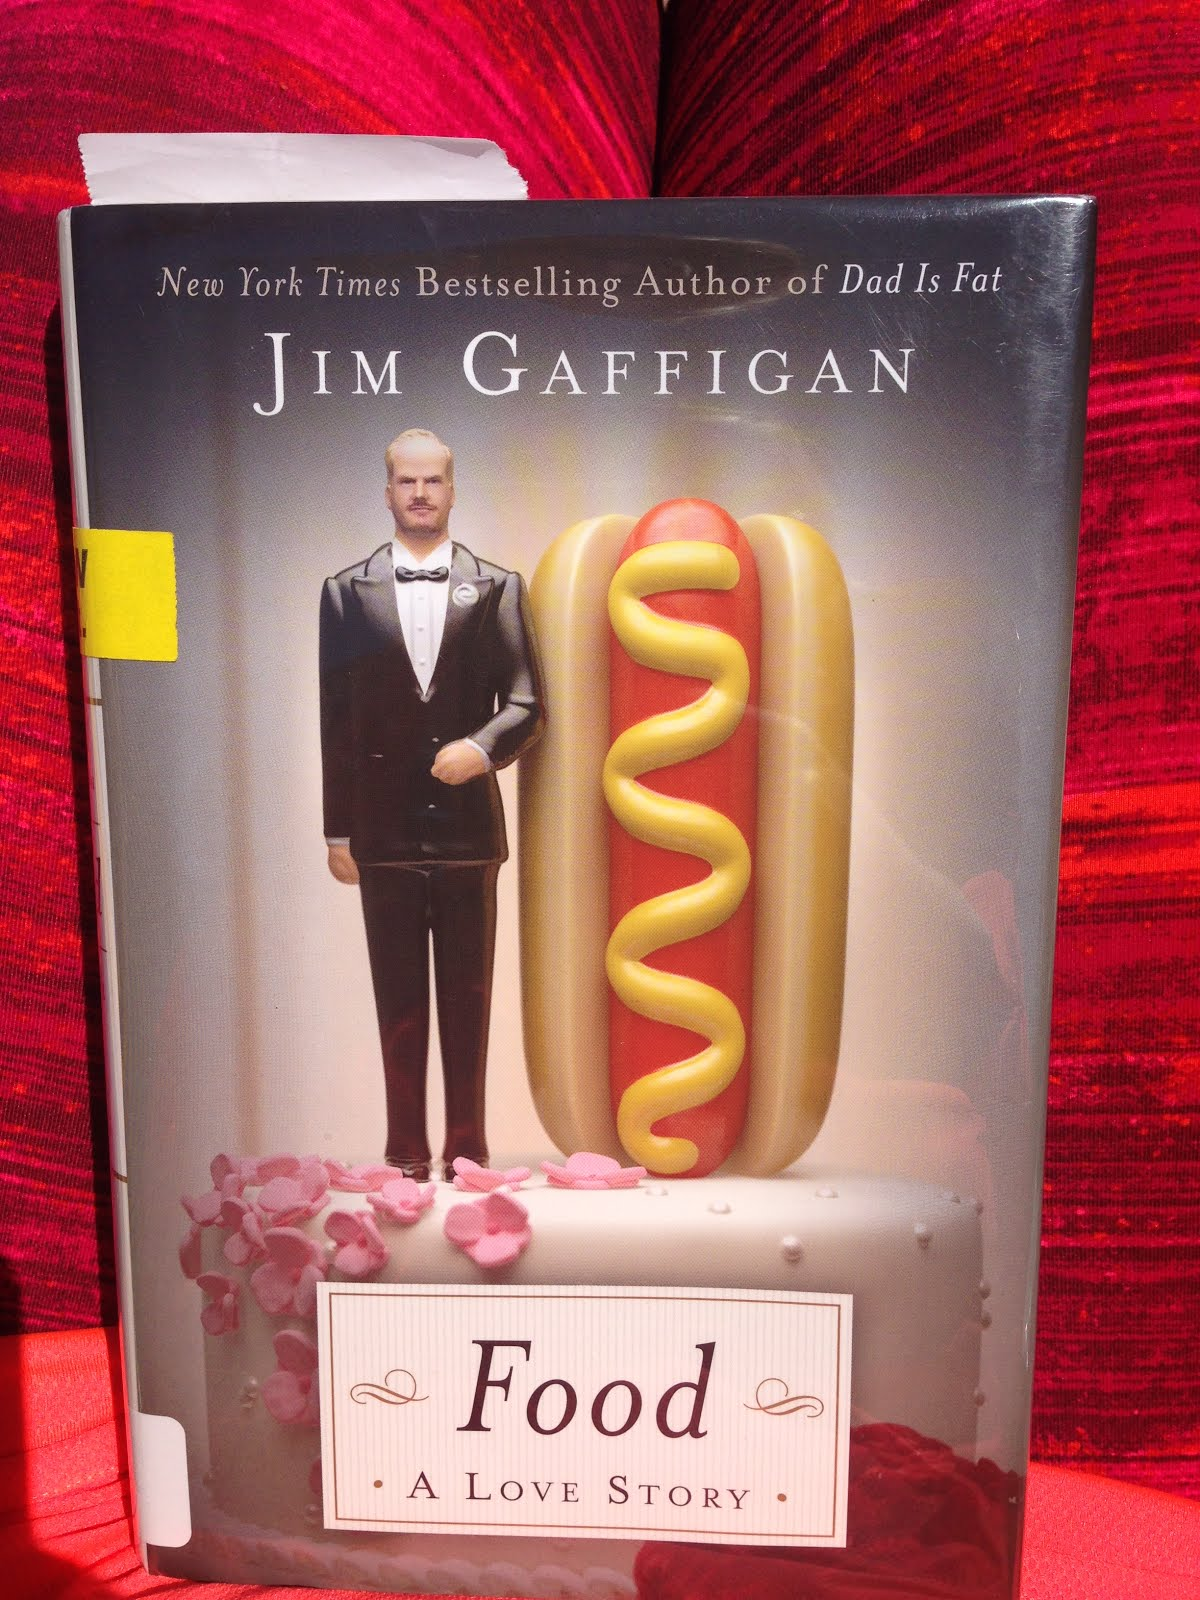 Food: A Love Story -- Jim Gaffigan